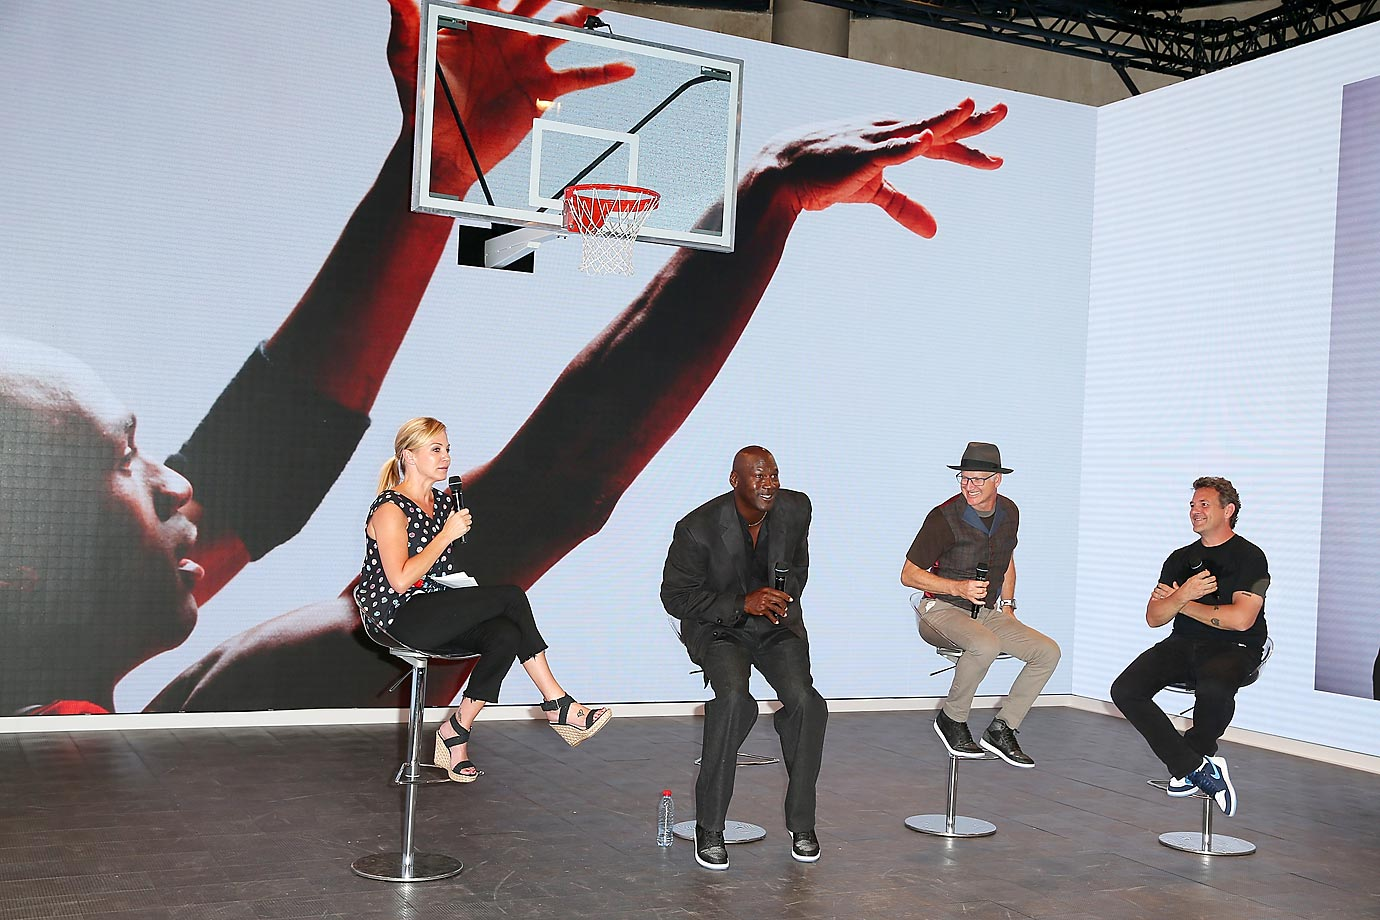 Michael Jordan was in Paris to celebrate the 30th anniversary of the Air Jordan basketball shoe during the Palais 23 street basketball tournament.